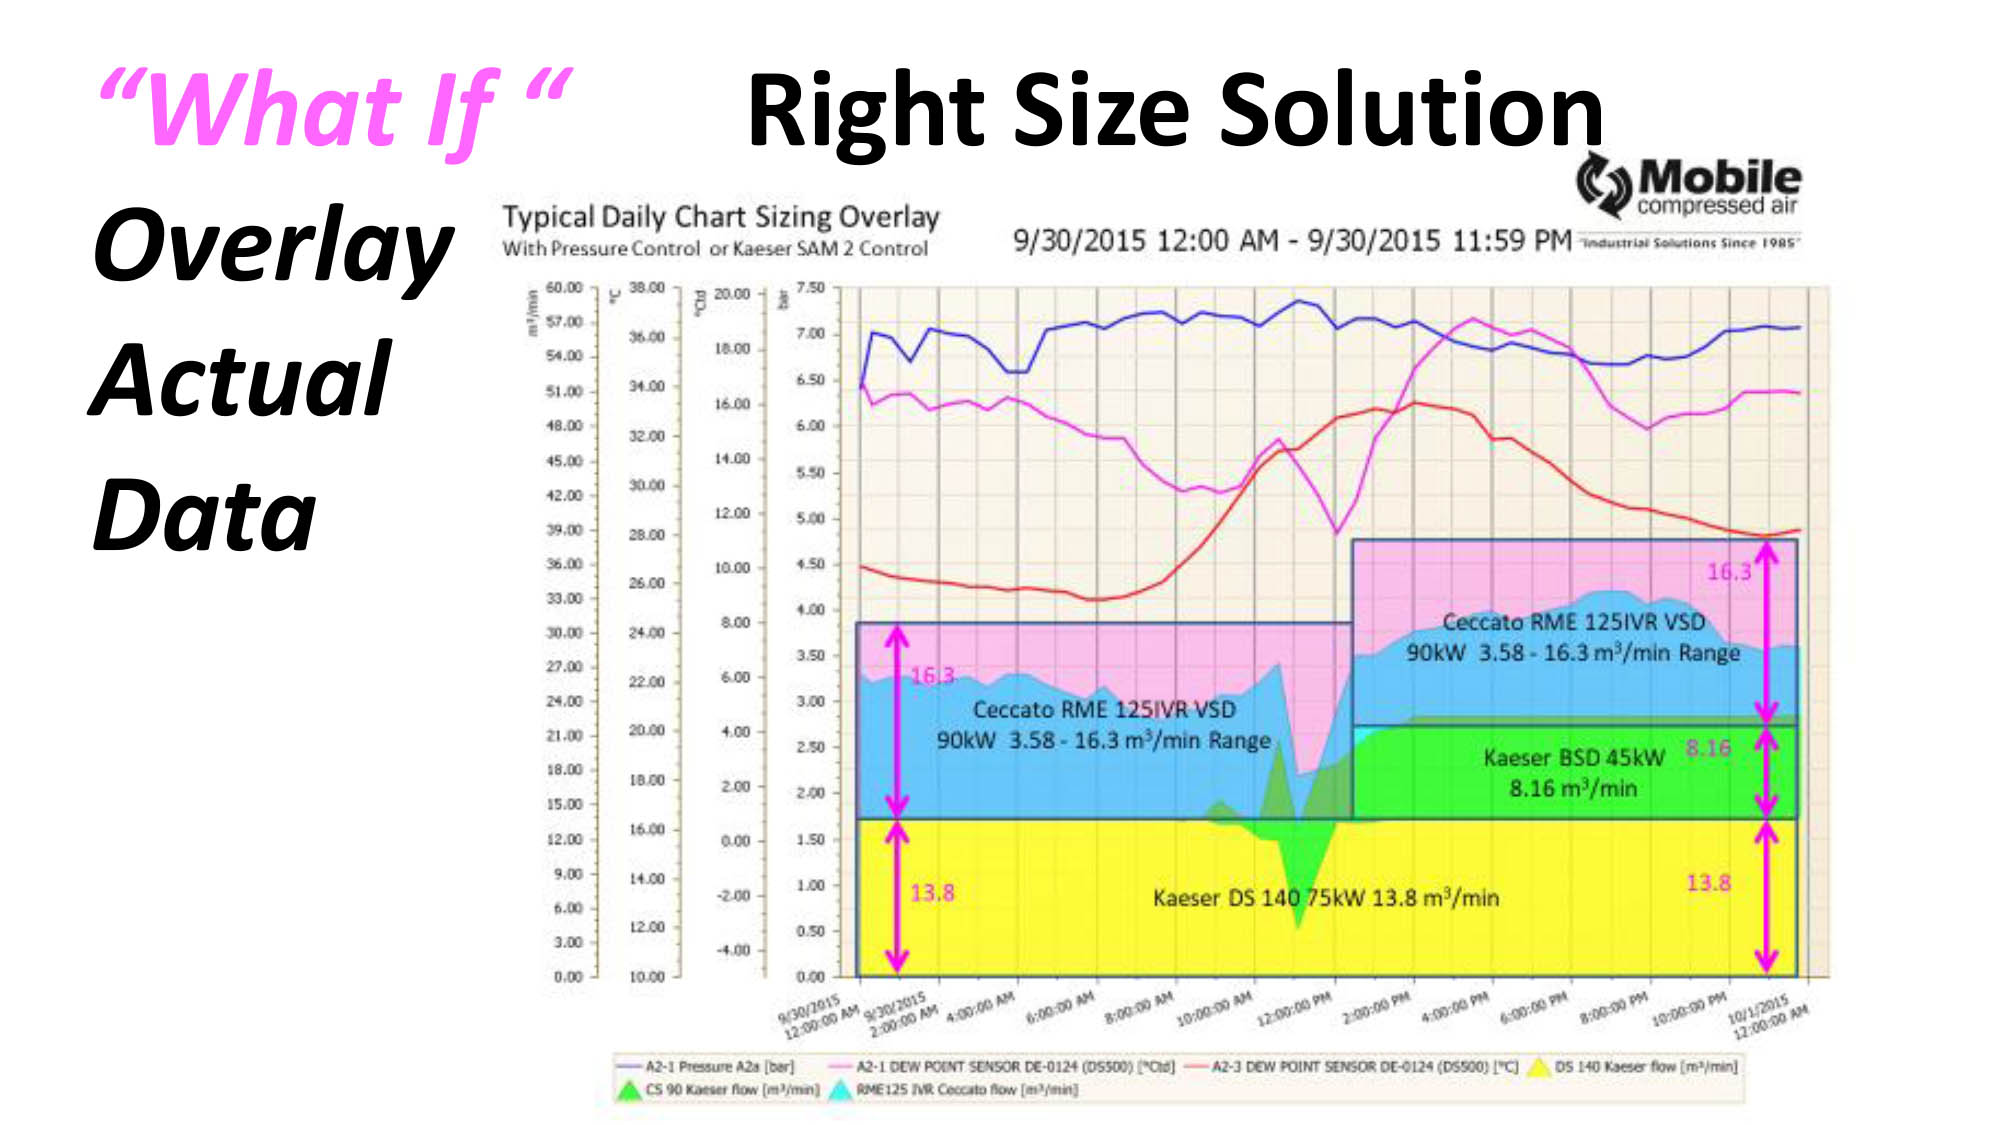 Right Size Solution